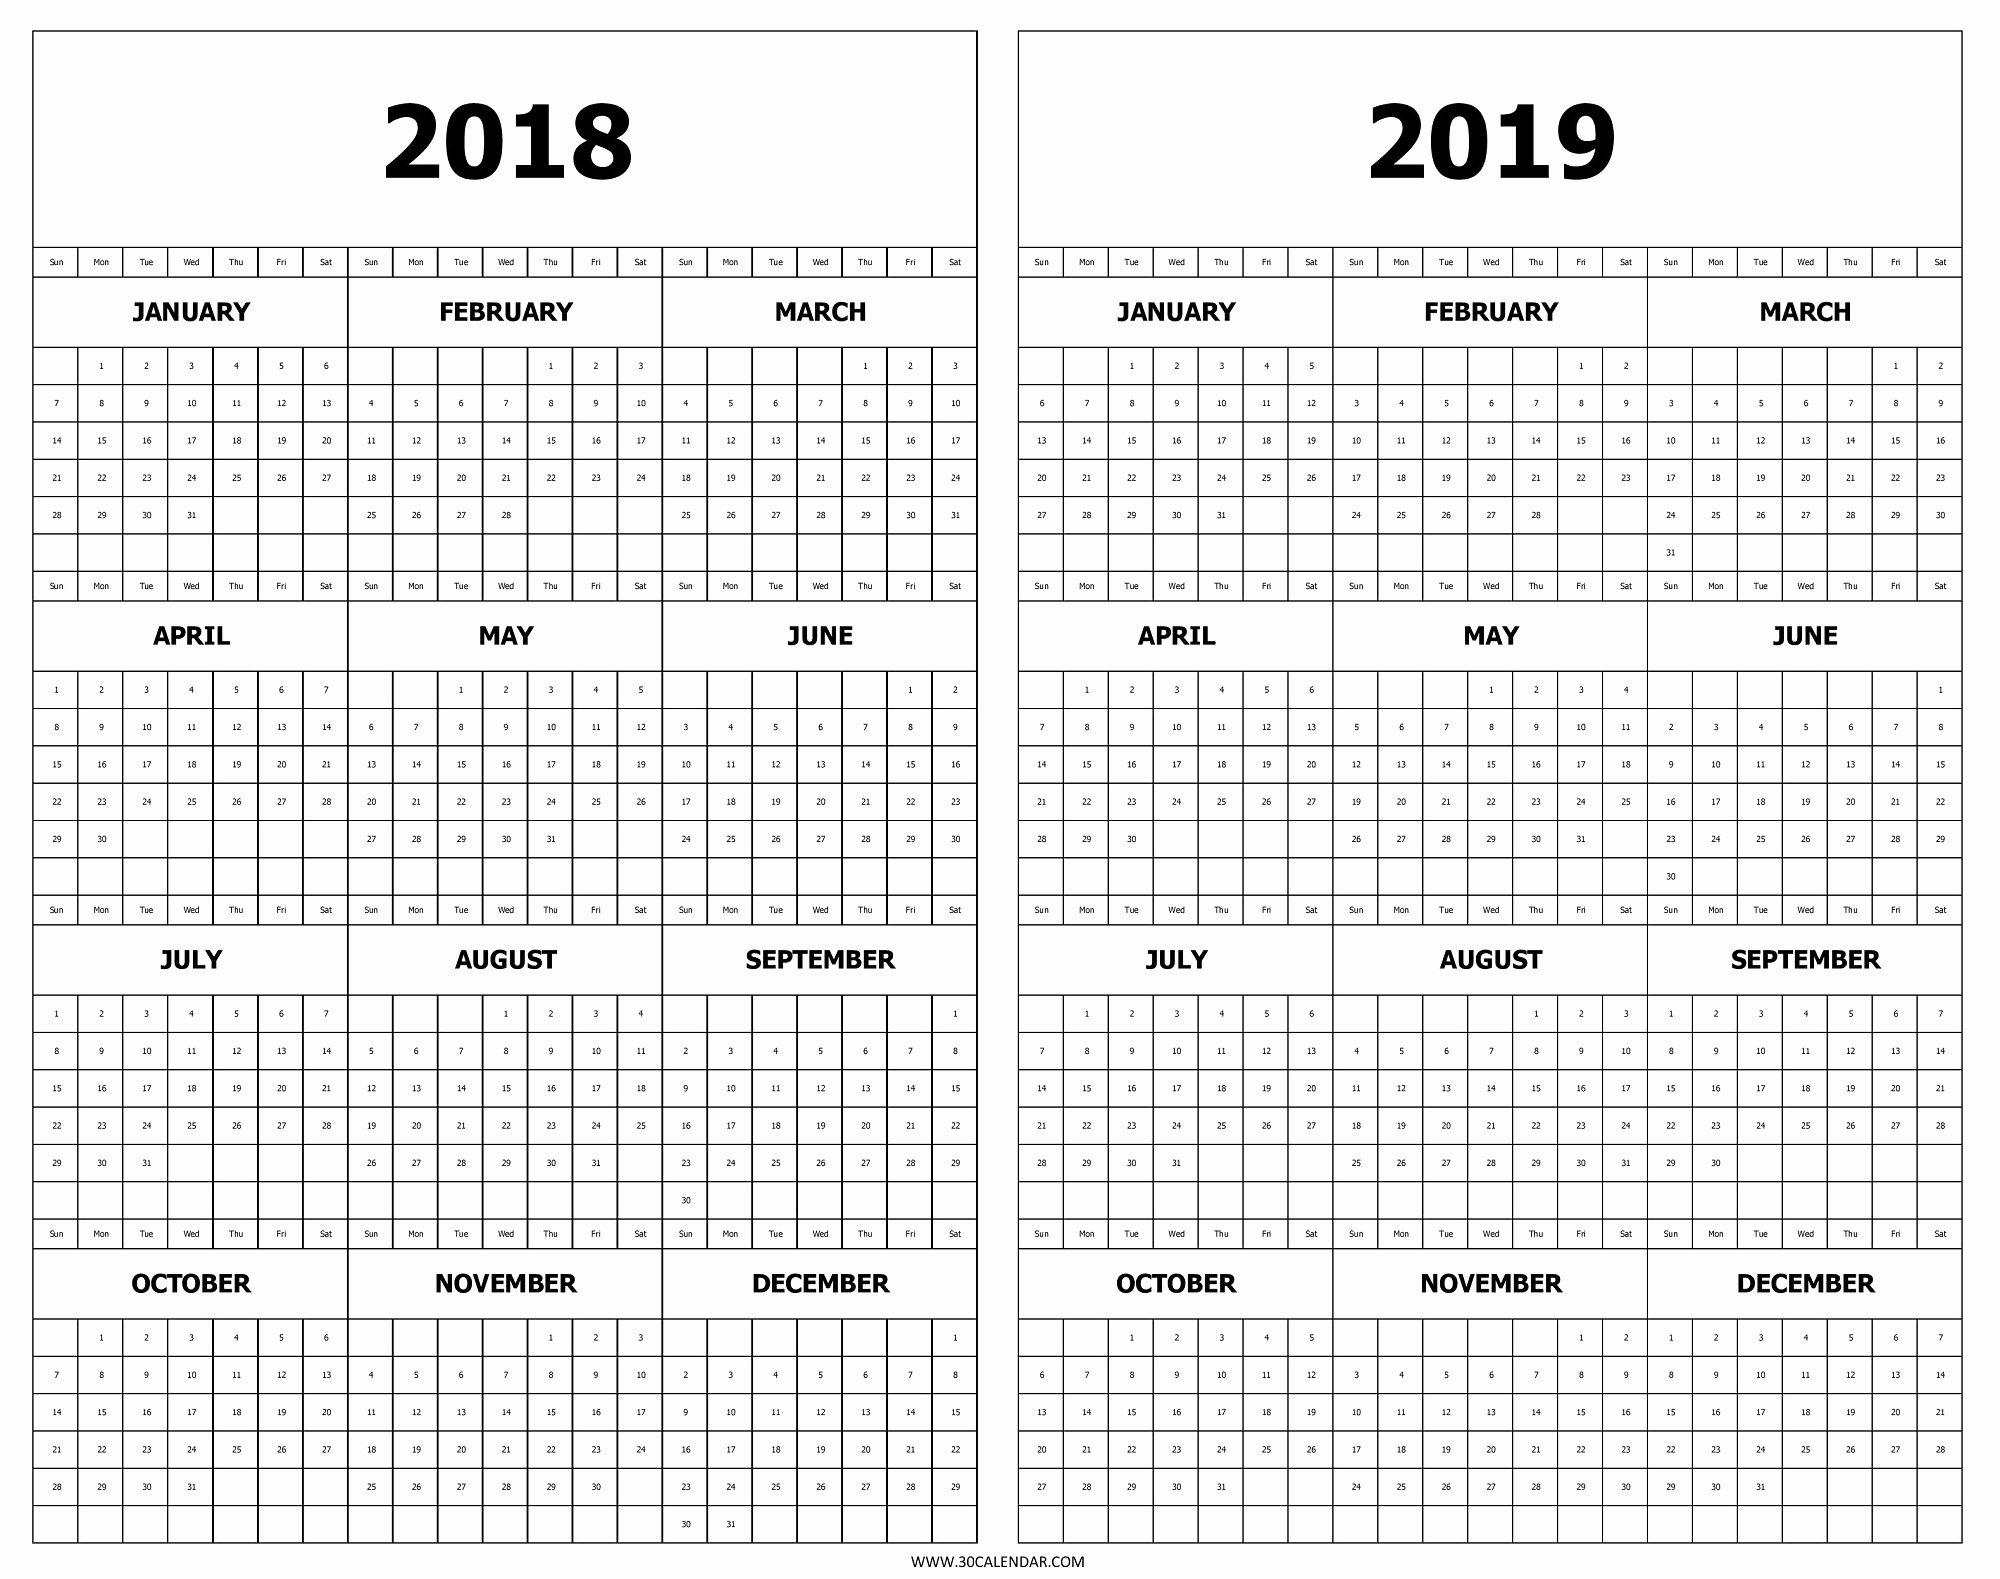 Unique 53 Sample Yearly Calendar At A Glance 2019 Printable pertaining to Free Year At A Glance Calendar 2019 2020